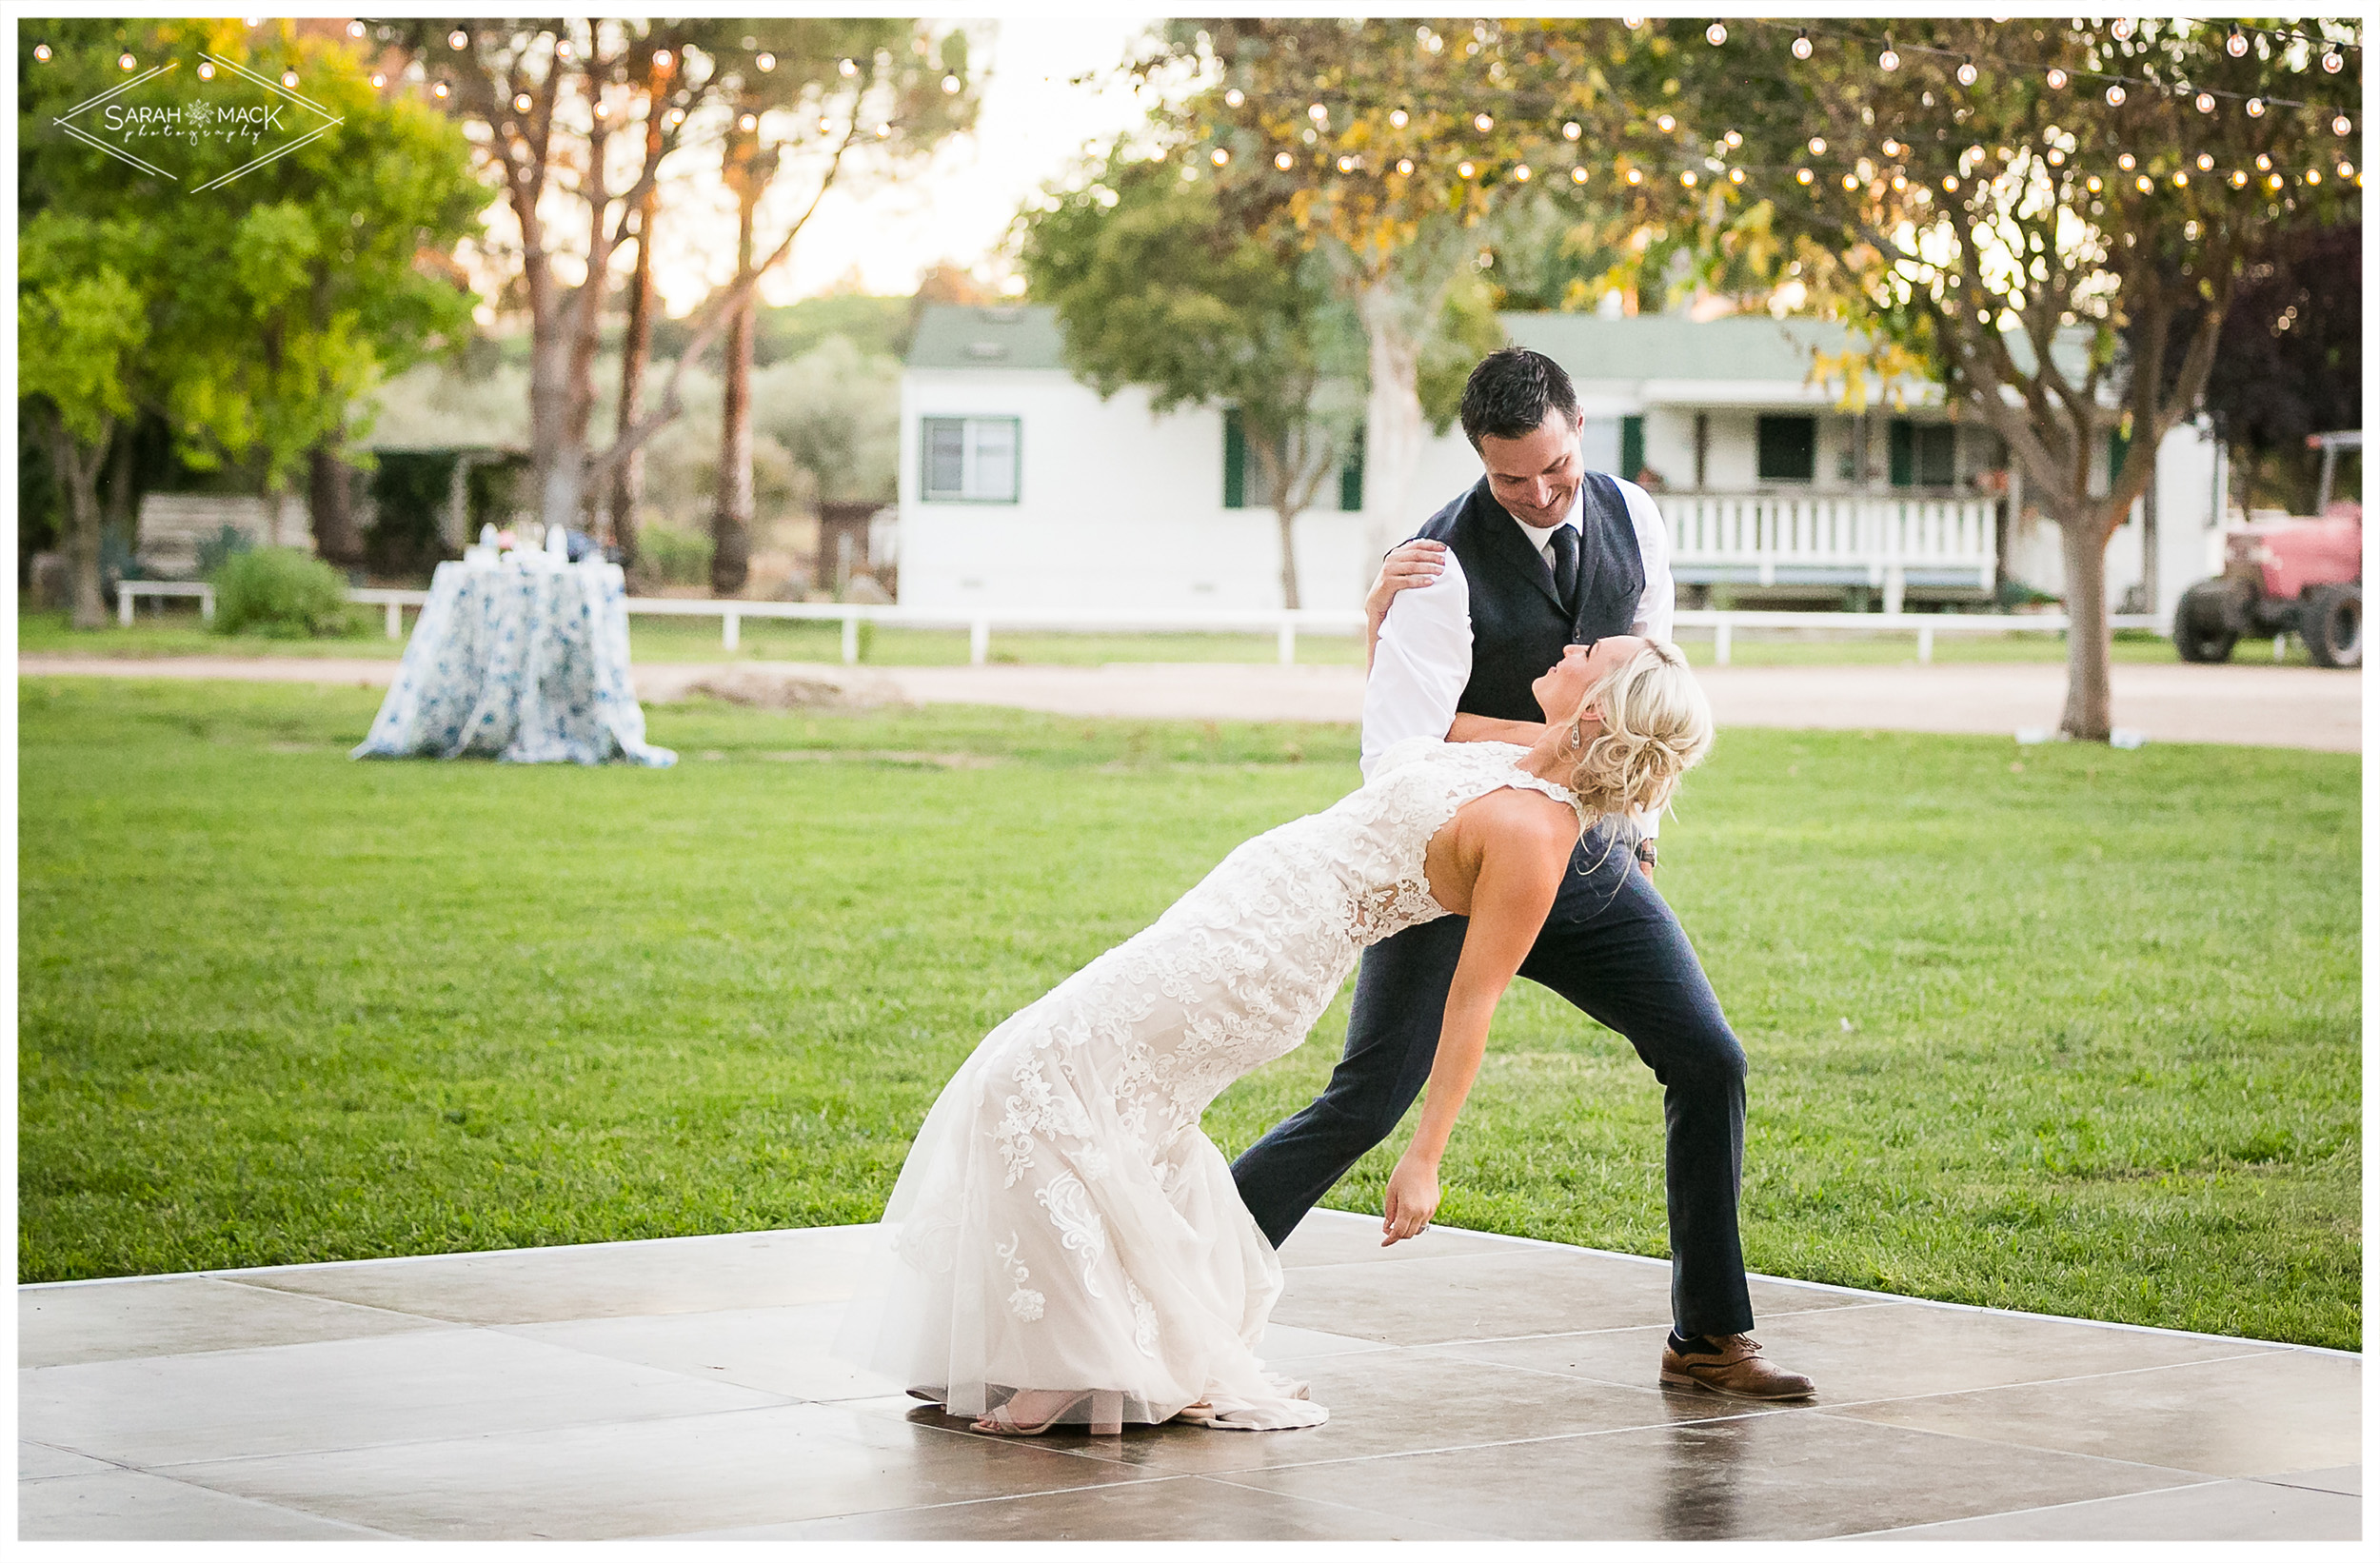 MA-Chandler-Ranch-Paso-Robles-Wedding-Photography-74.jpg